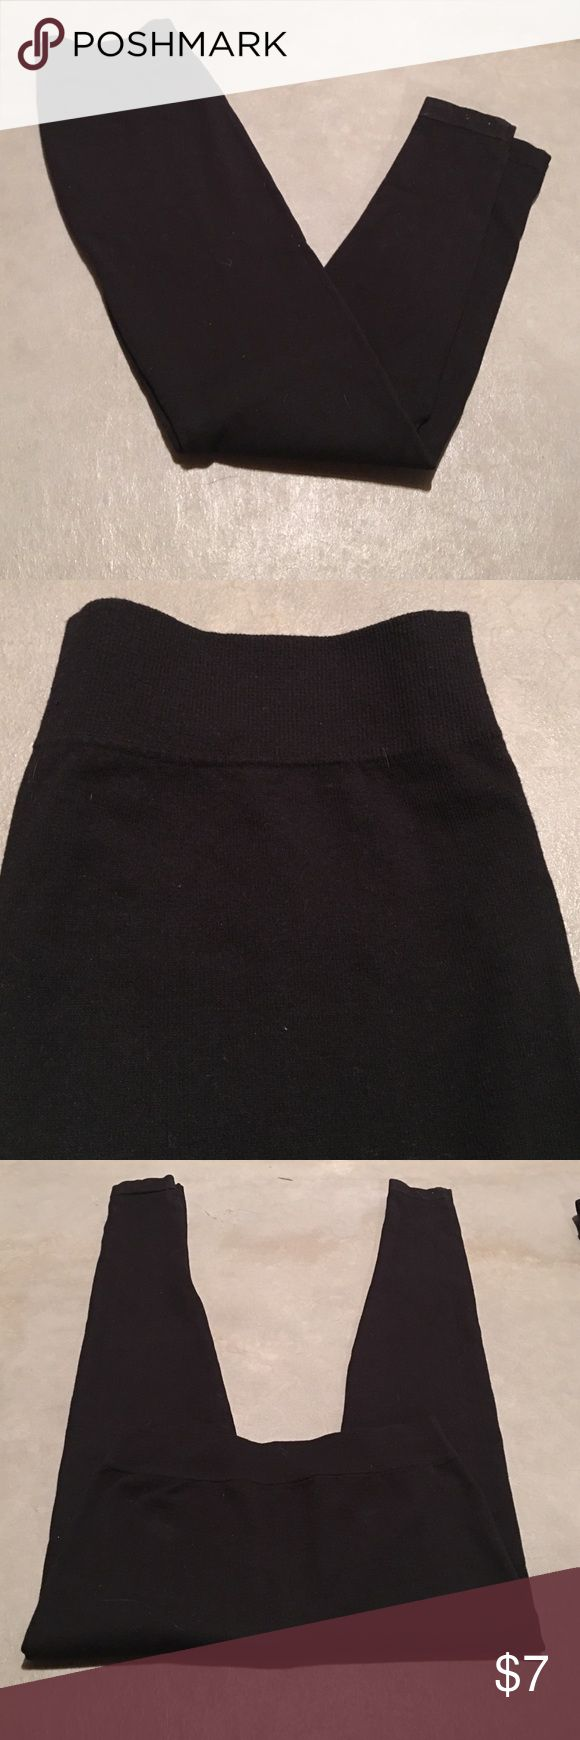 Thick black leggings Heavy warm material- solid black- size large- long leggings Pants Leggings